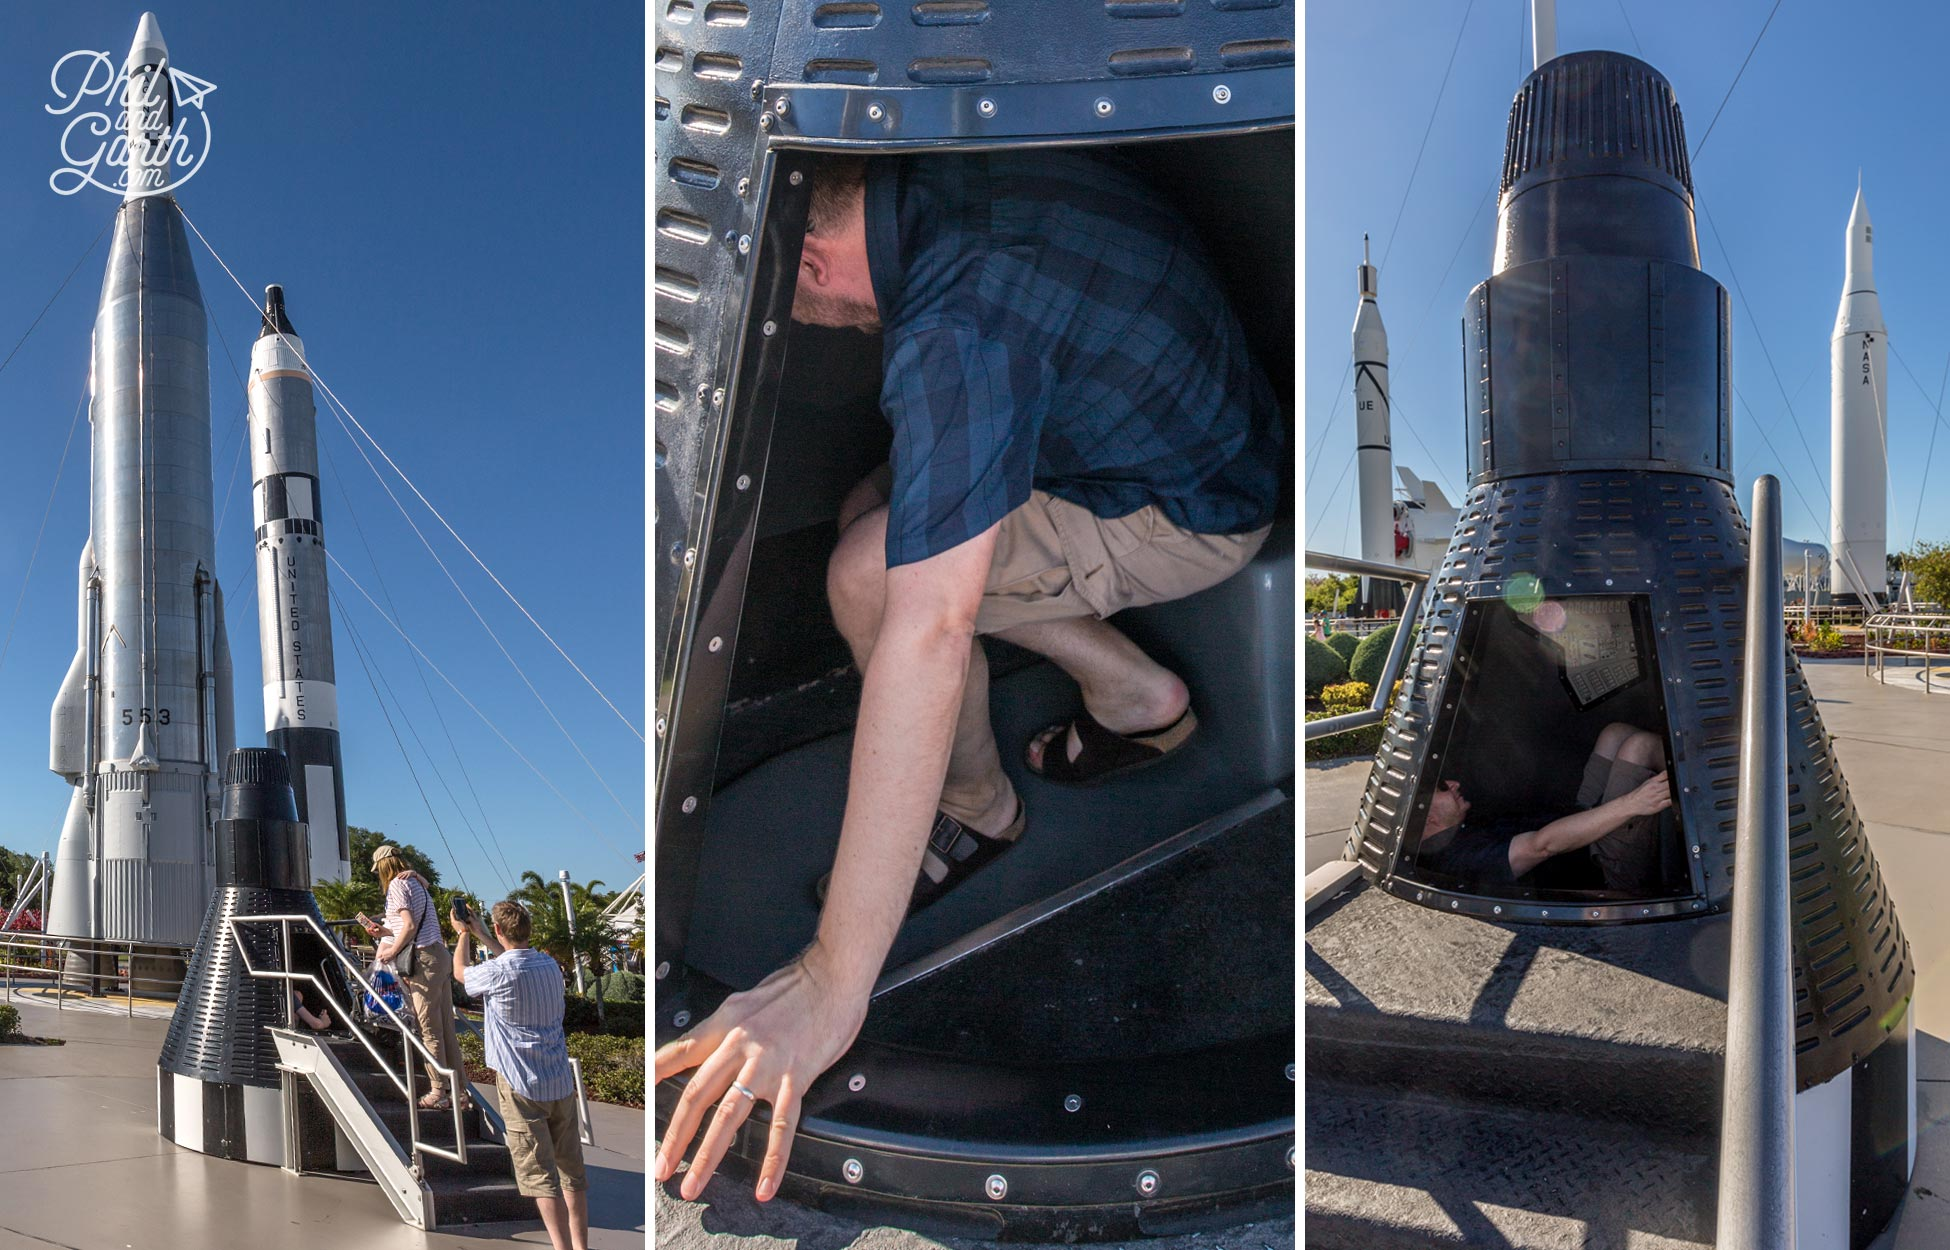 Garth checking out the Mercury capsule for size